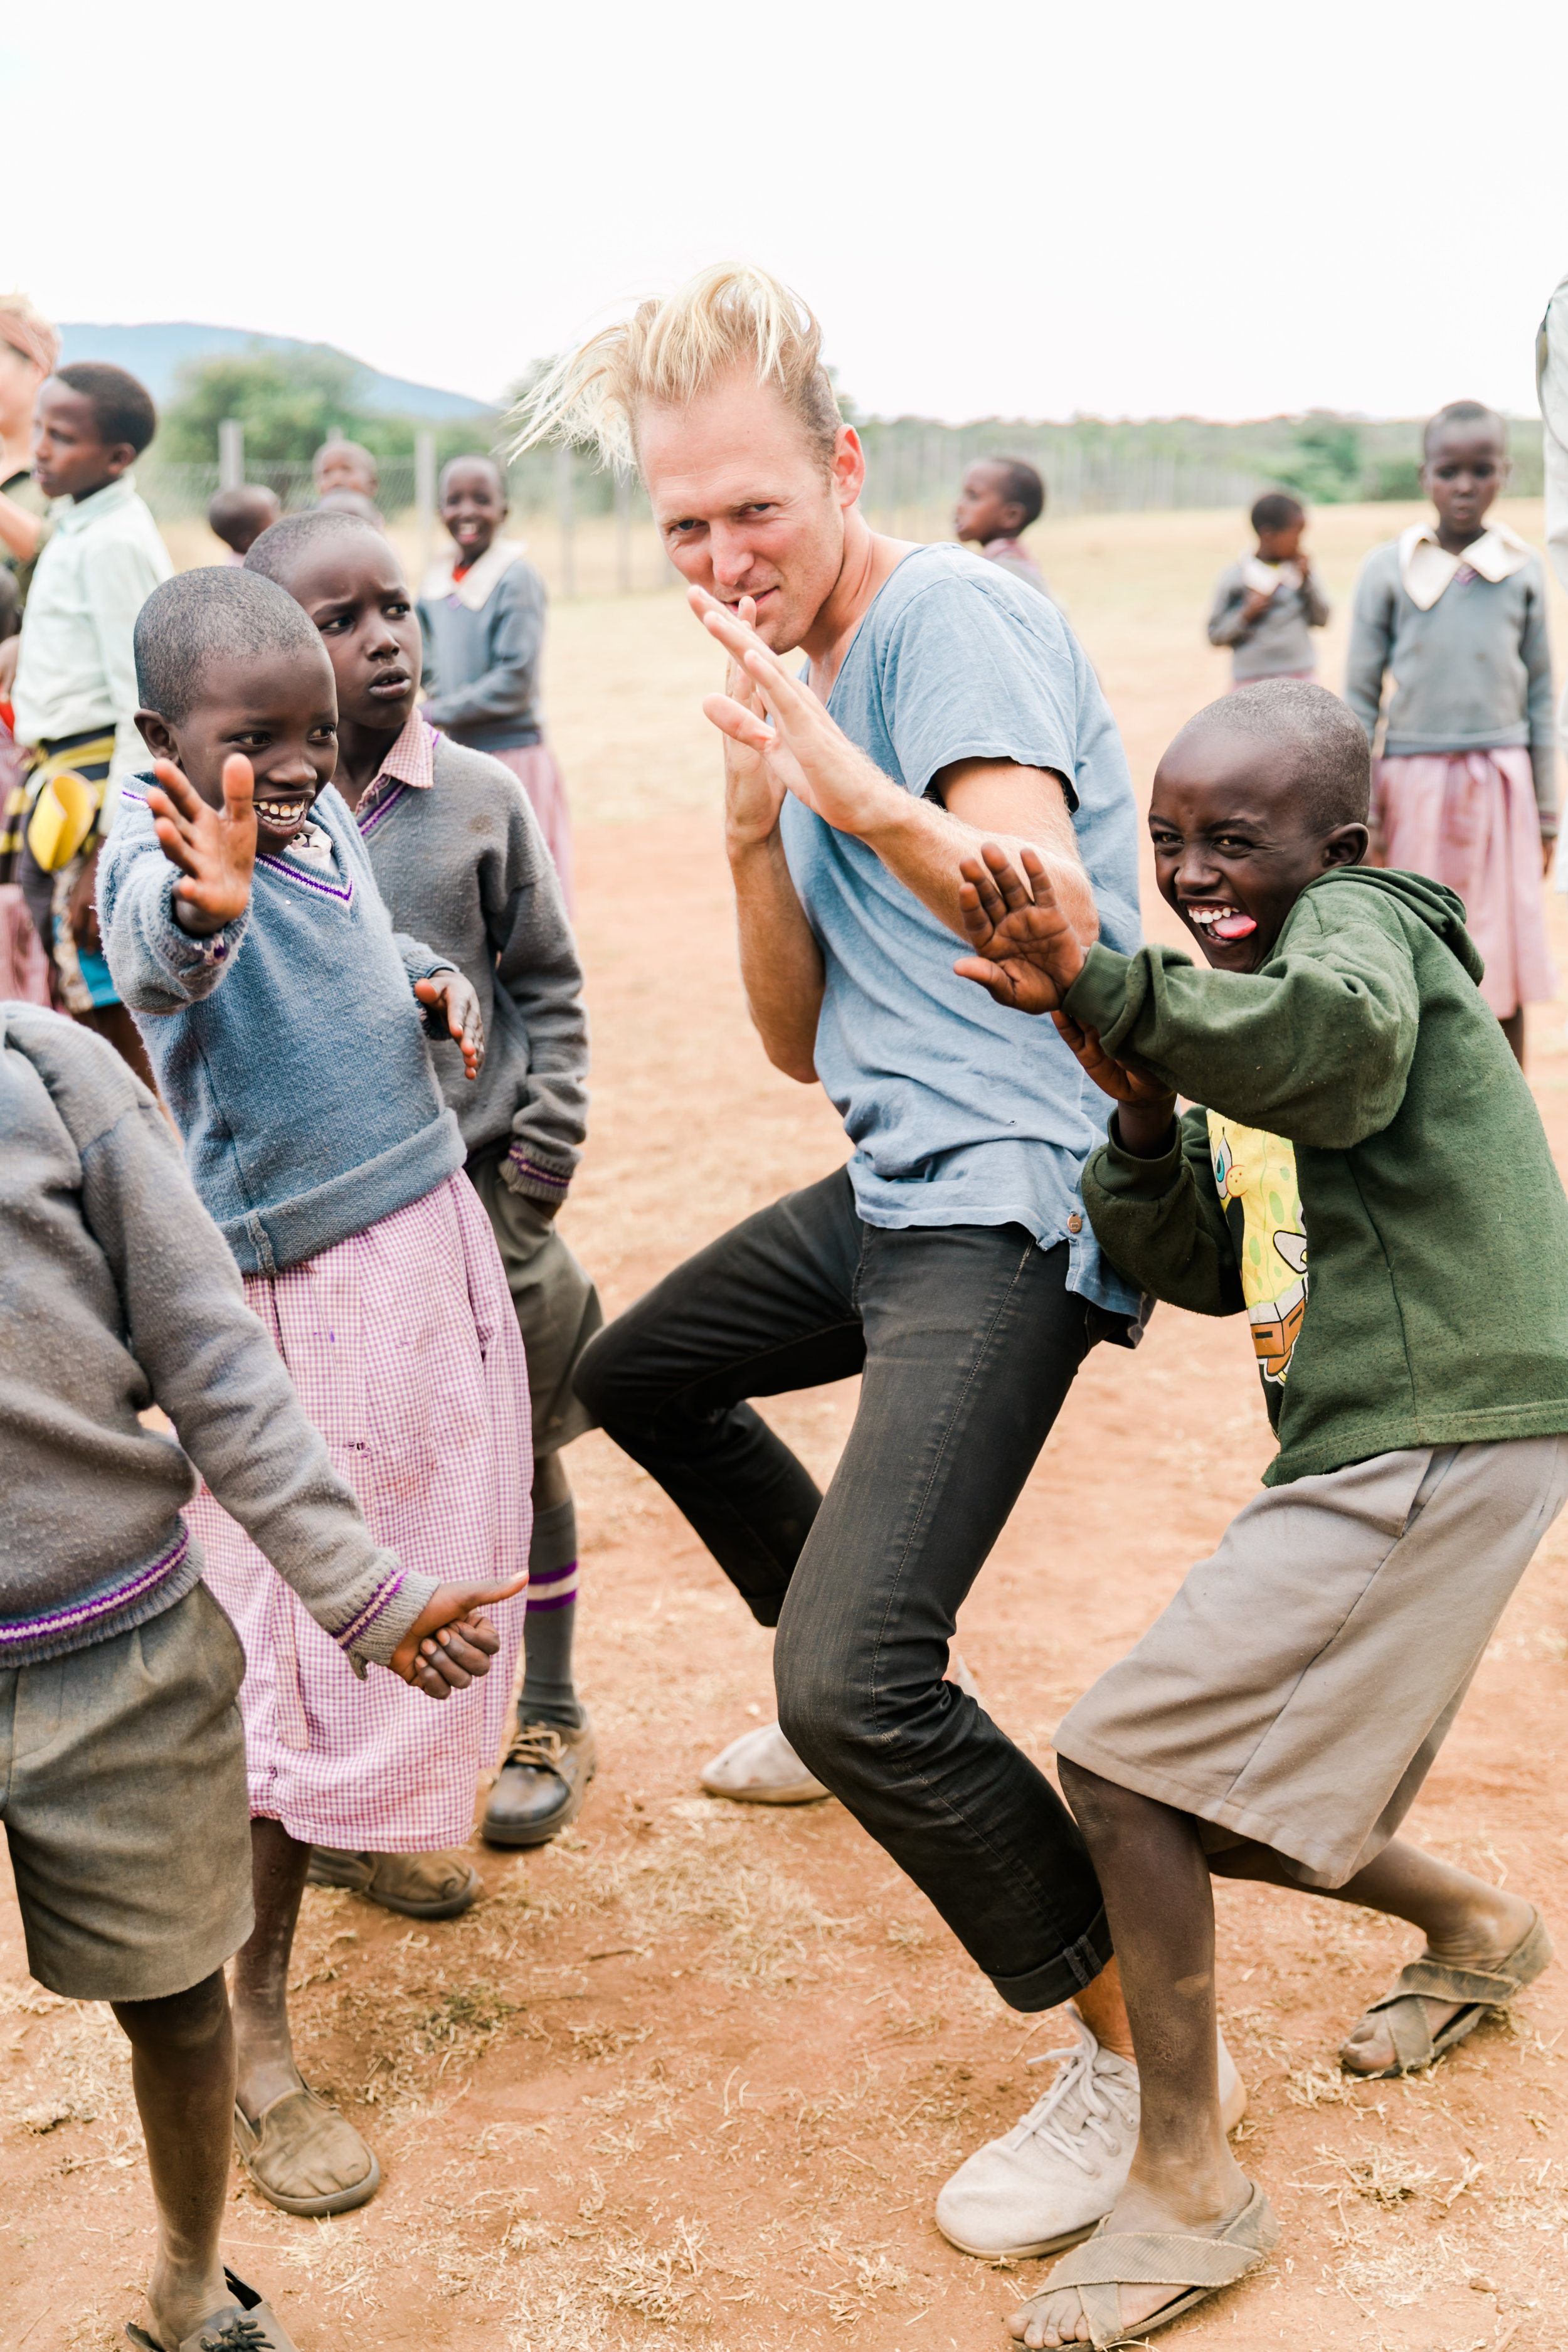 Playing with school kids in Maasai Mara - Ph. Valorie Darling